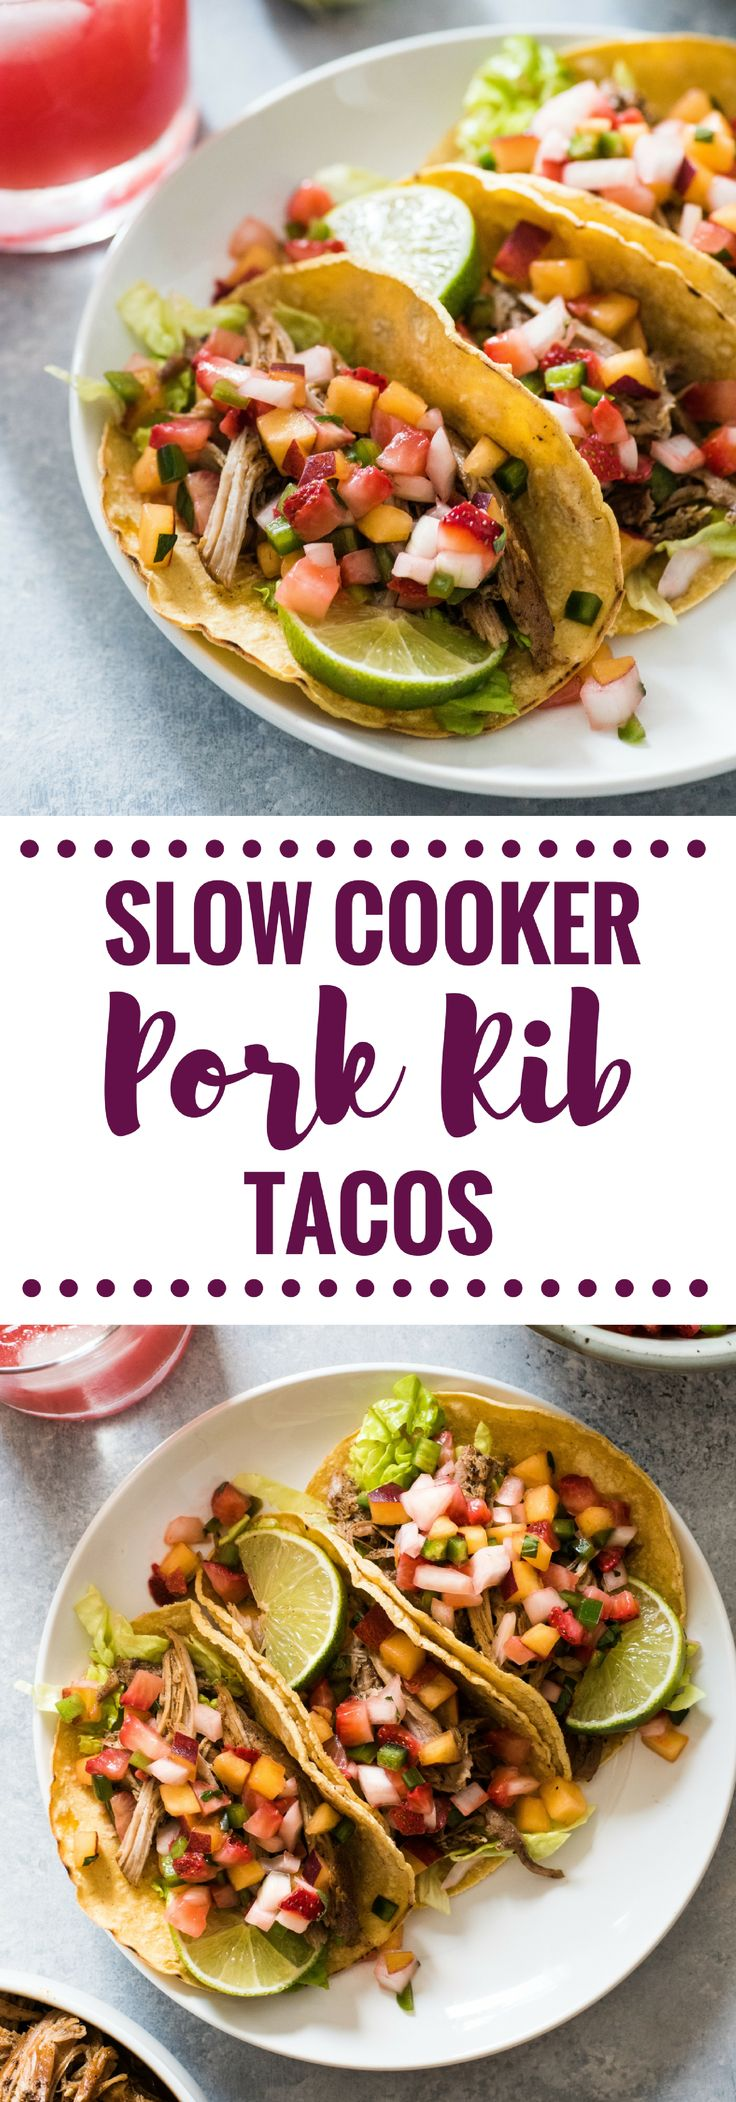 These Slow Cooker Pork Rib Tacos are seasoned with Mexican spices and cooked in orange juice for a delicious and easy weeknight meal! (gluten free)